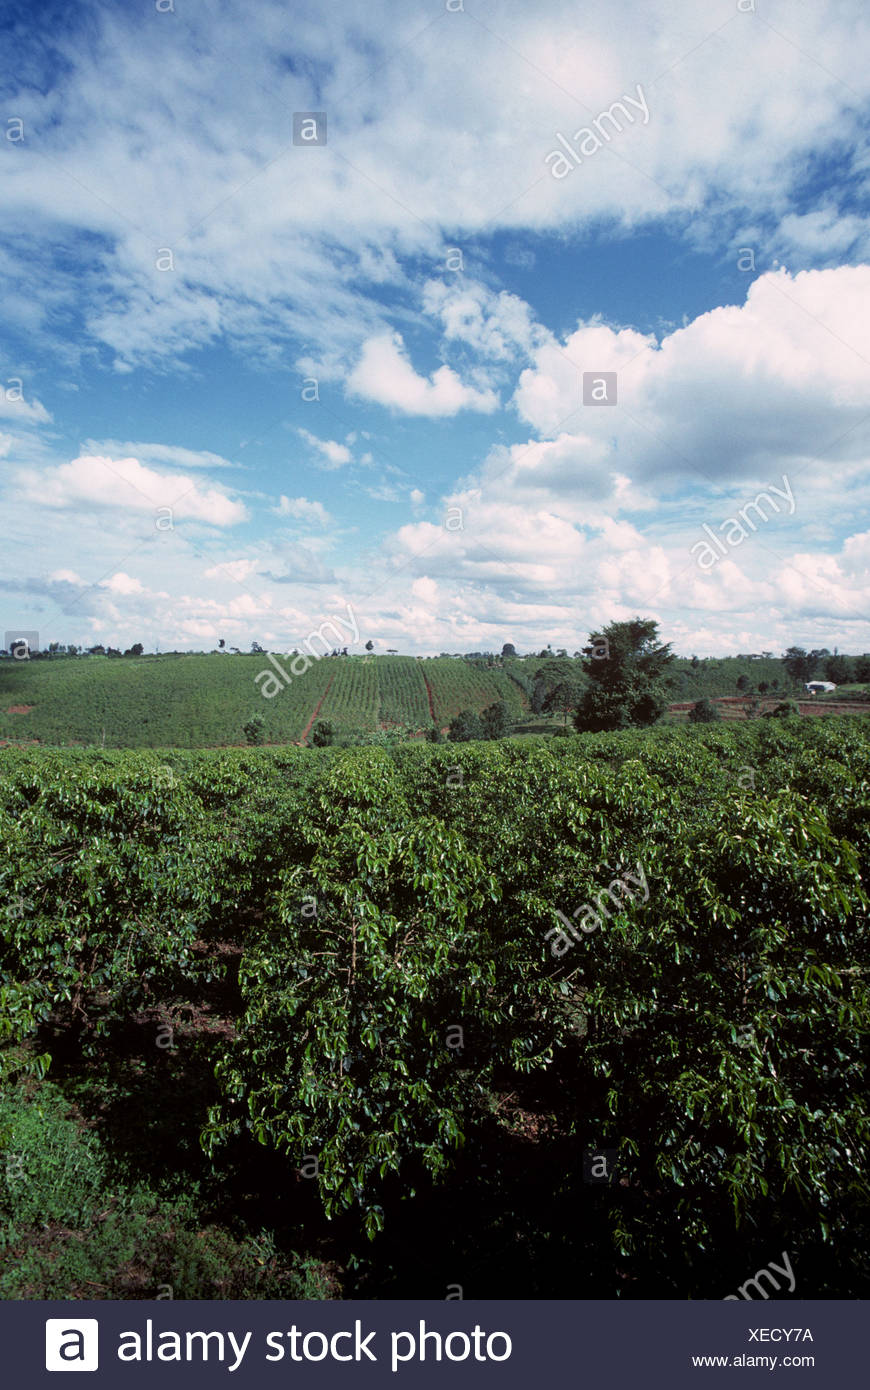 Coffee plantations without shade trees near Nairobi Kenya - Stock Image